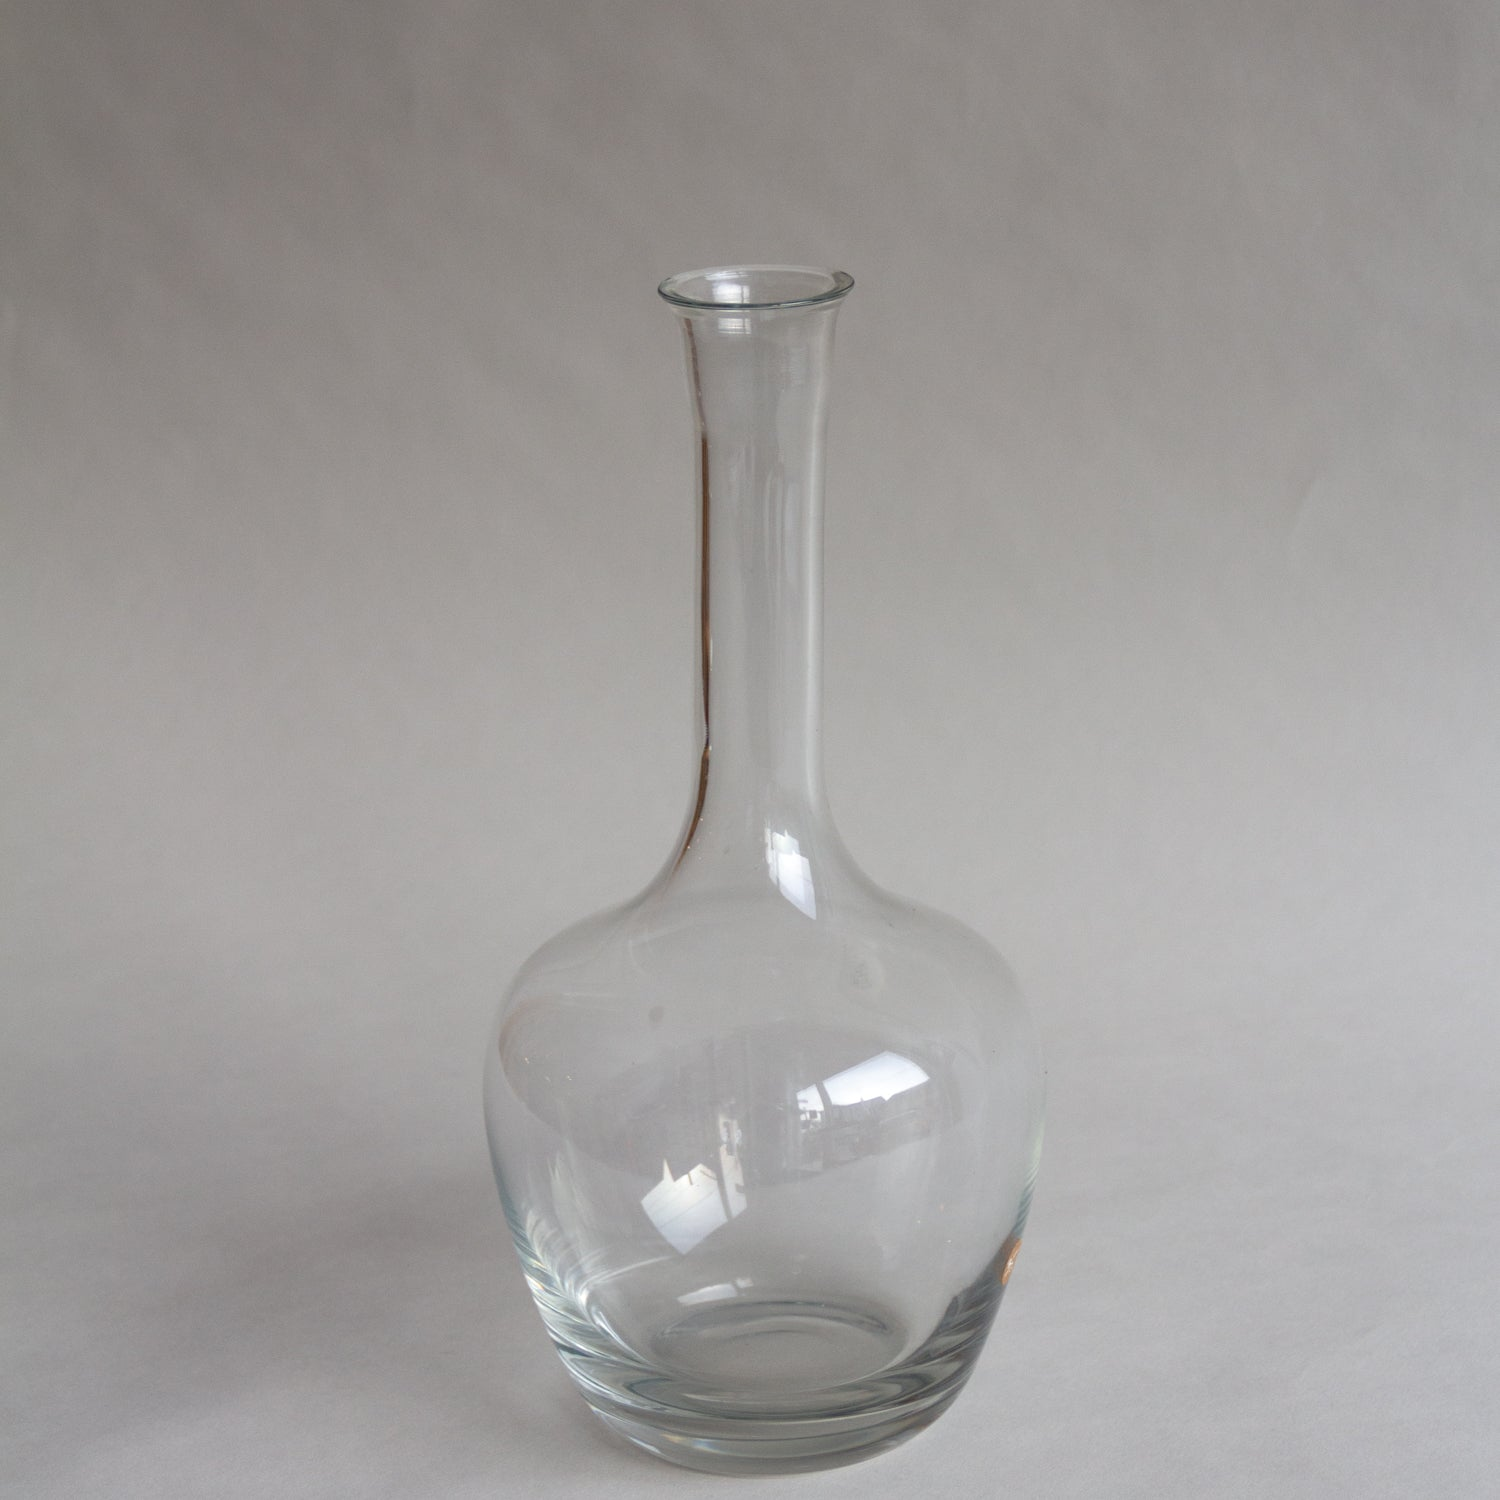 Glass Vase with Skinny Neck